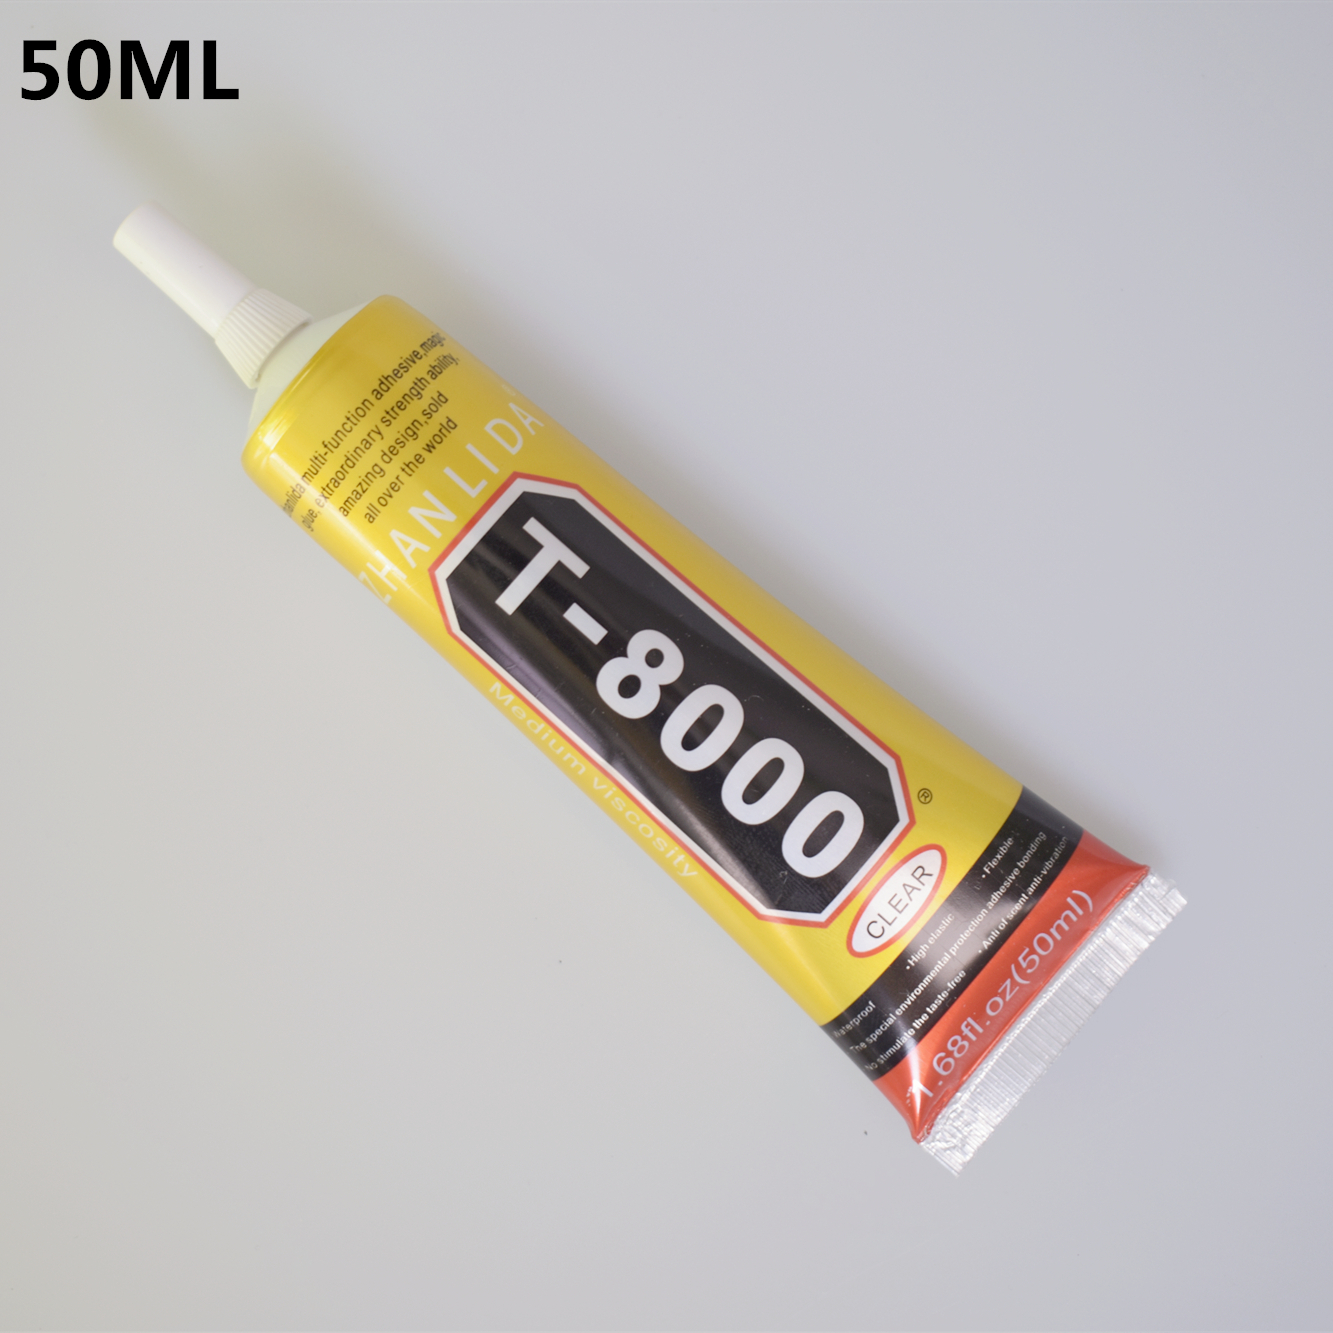 1 Pc 50ml T-8000 Glue T8000 Multi Purpose Glue Adhesive Epoxy Resin Repair Cell Phone LCD Touch Screen Super DIY Glue T 8000